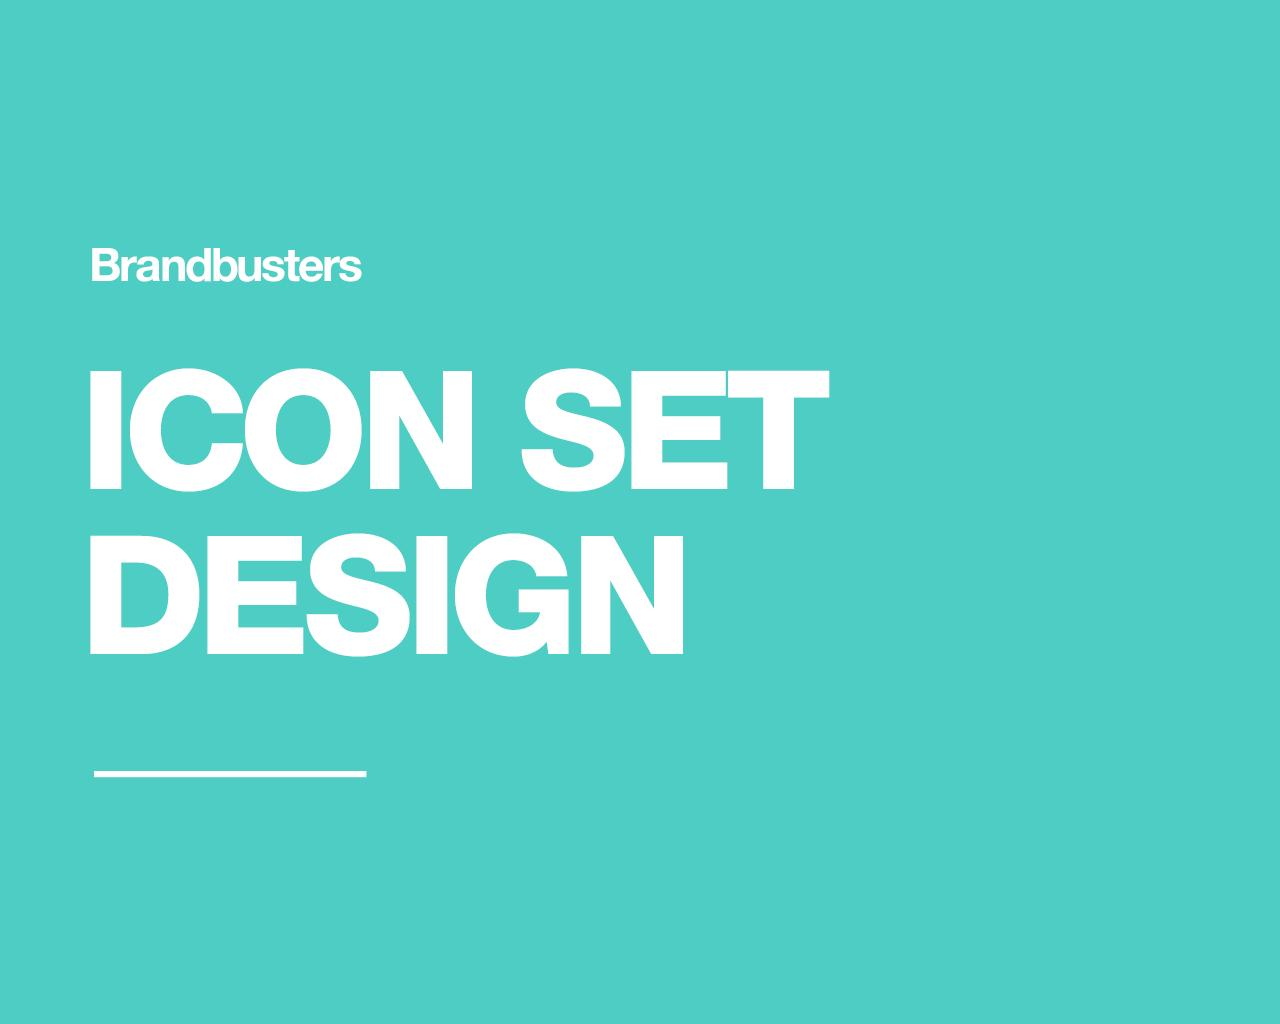 Professional Icon Set Design by Brandbusters - 110655